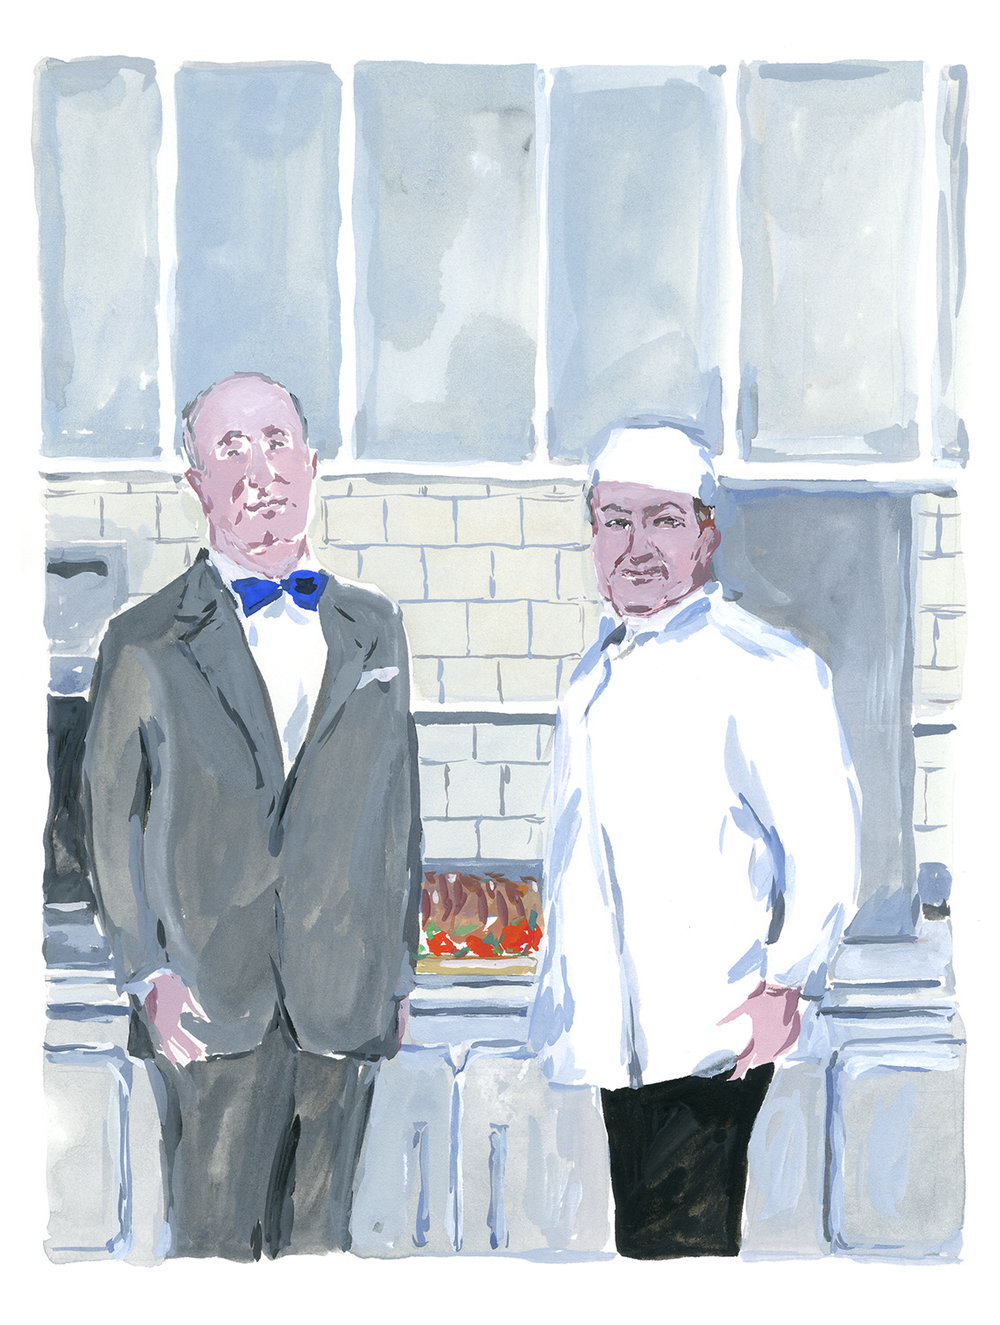 Christian Dior and his Chef at La Colle Noire. Christian Dior in the South, published by Rizzoli NY.